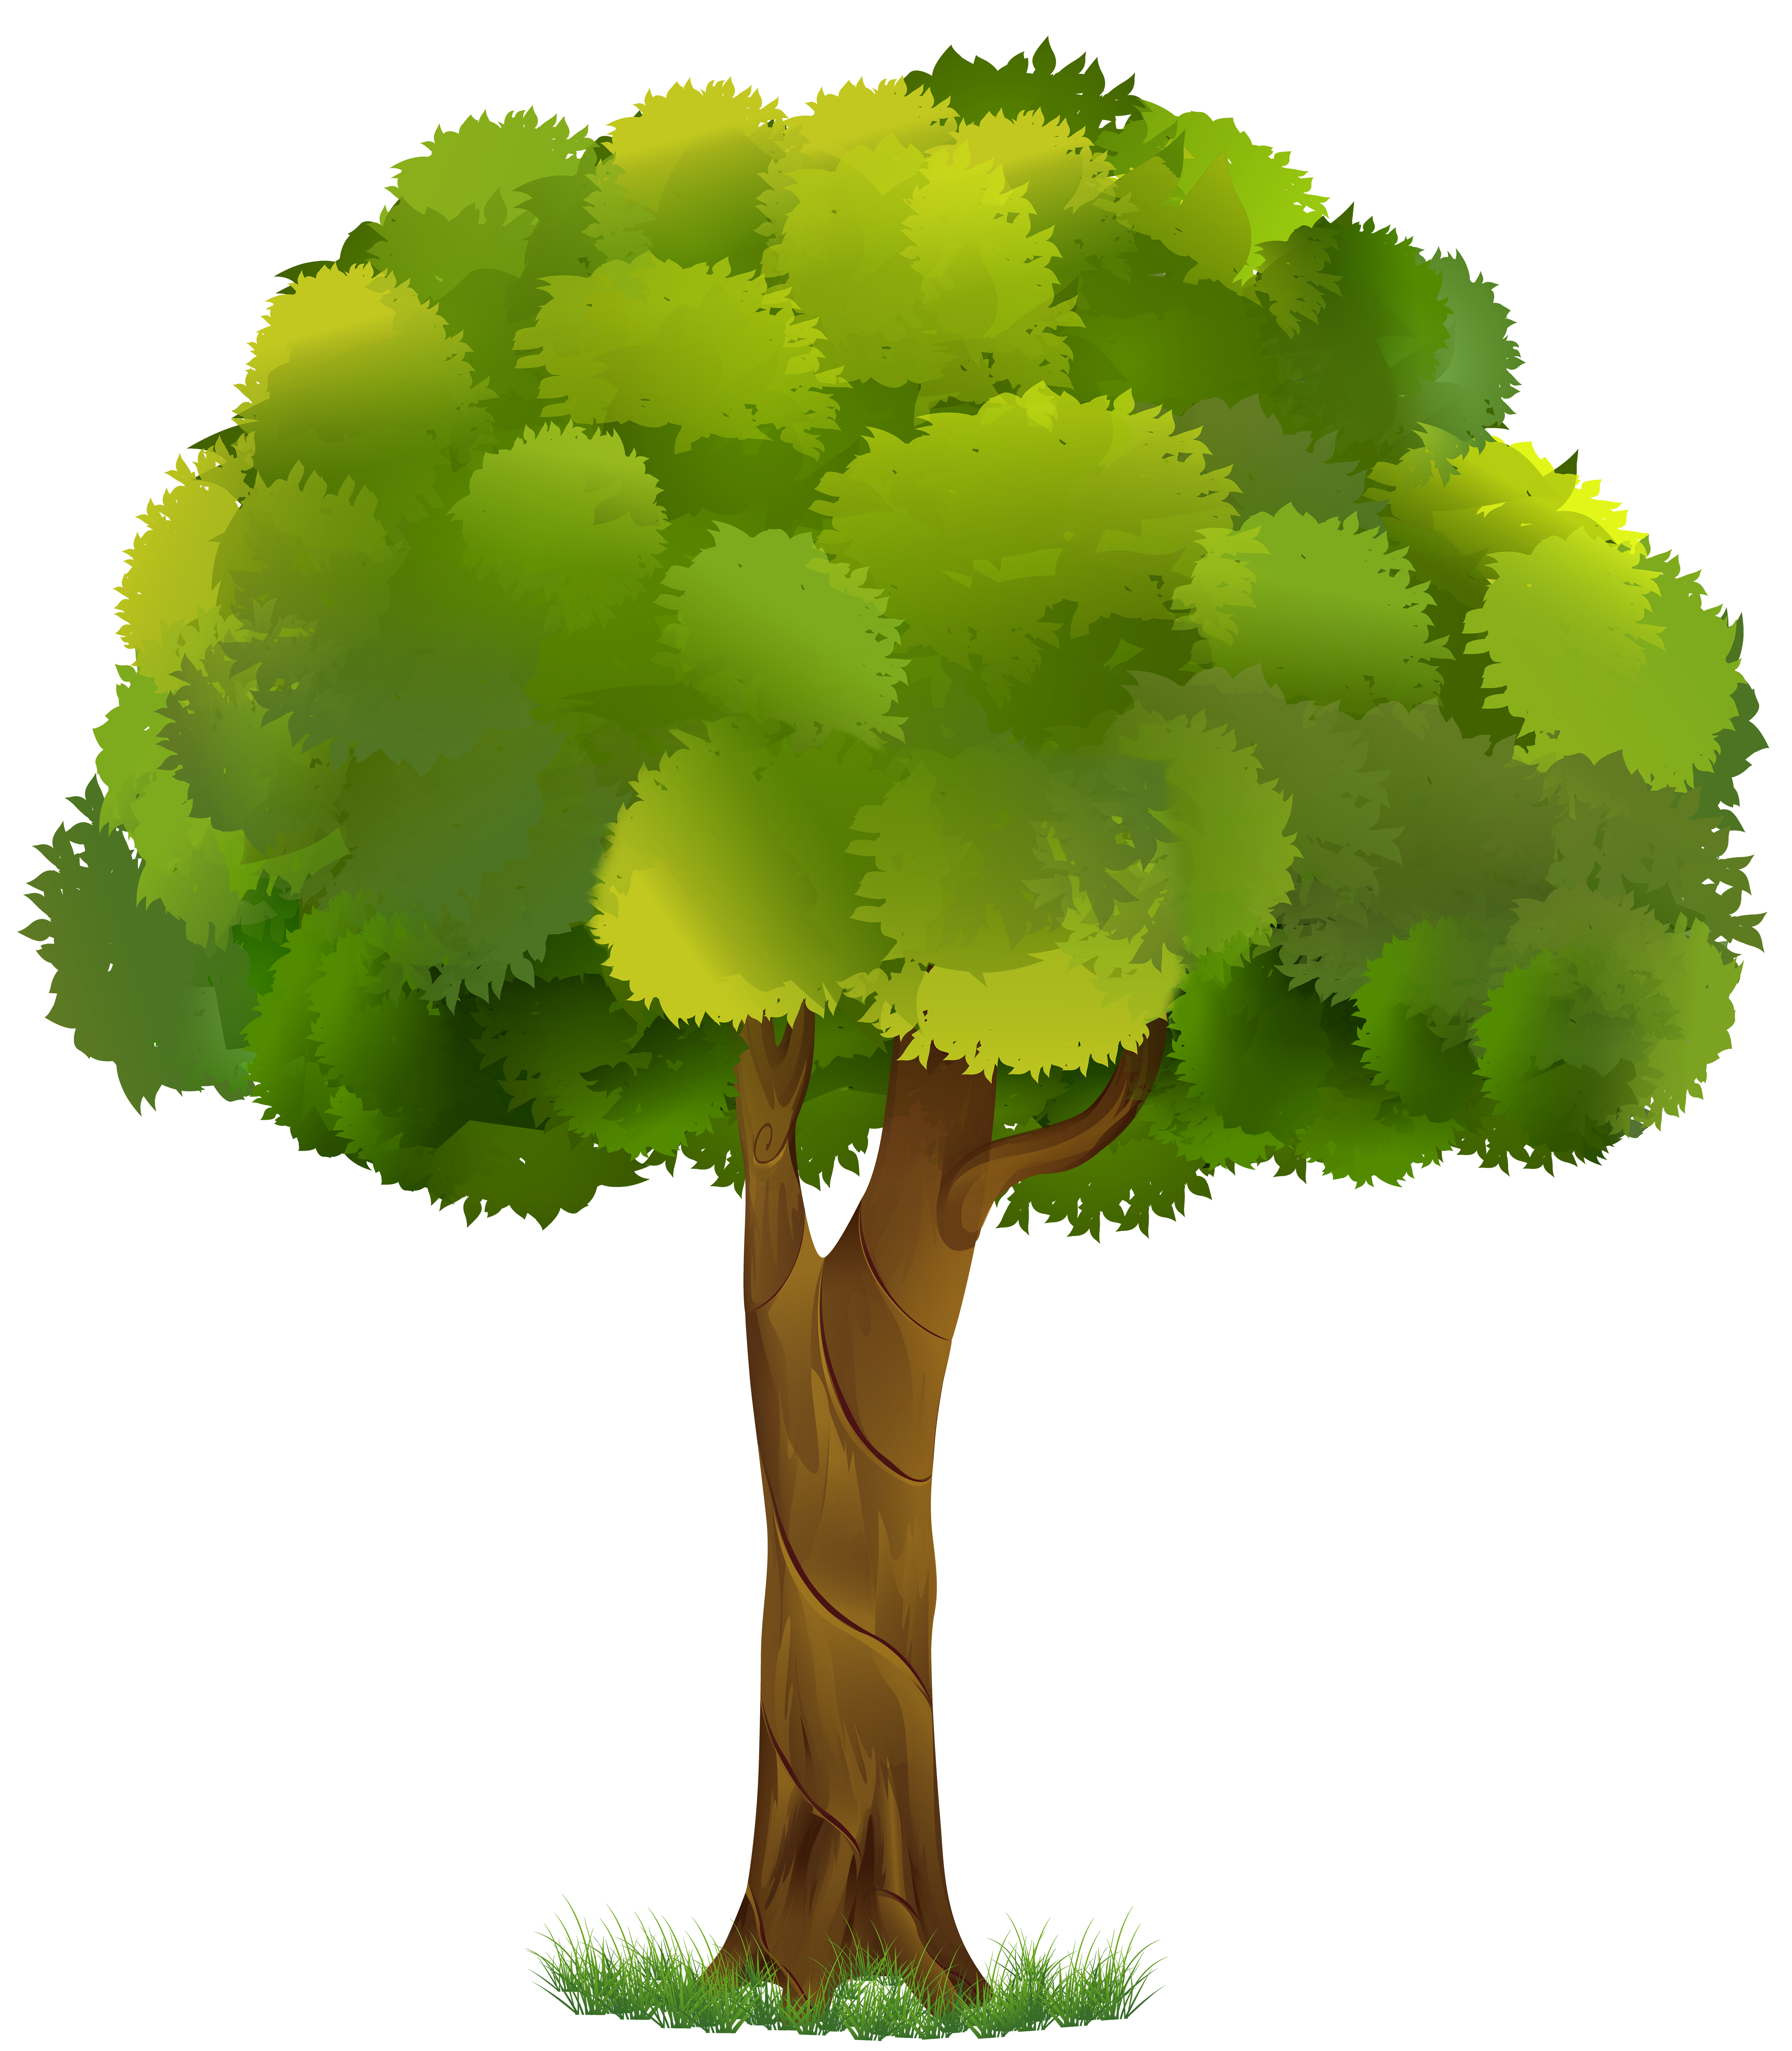 Tree Transparent Clip Art Image Gallery Yopriceville High Quality Images And Transparent Png Free Clipart Clip Art Art Images Free Clip Art